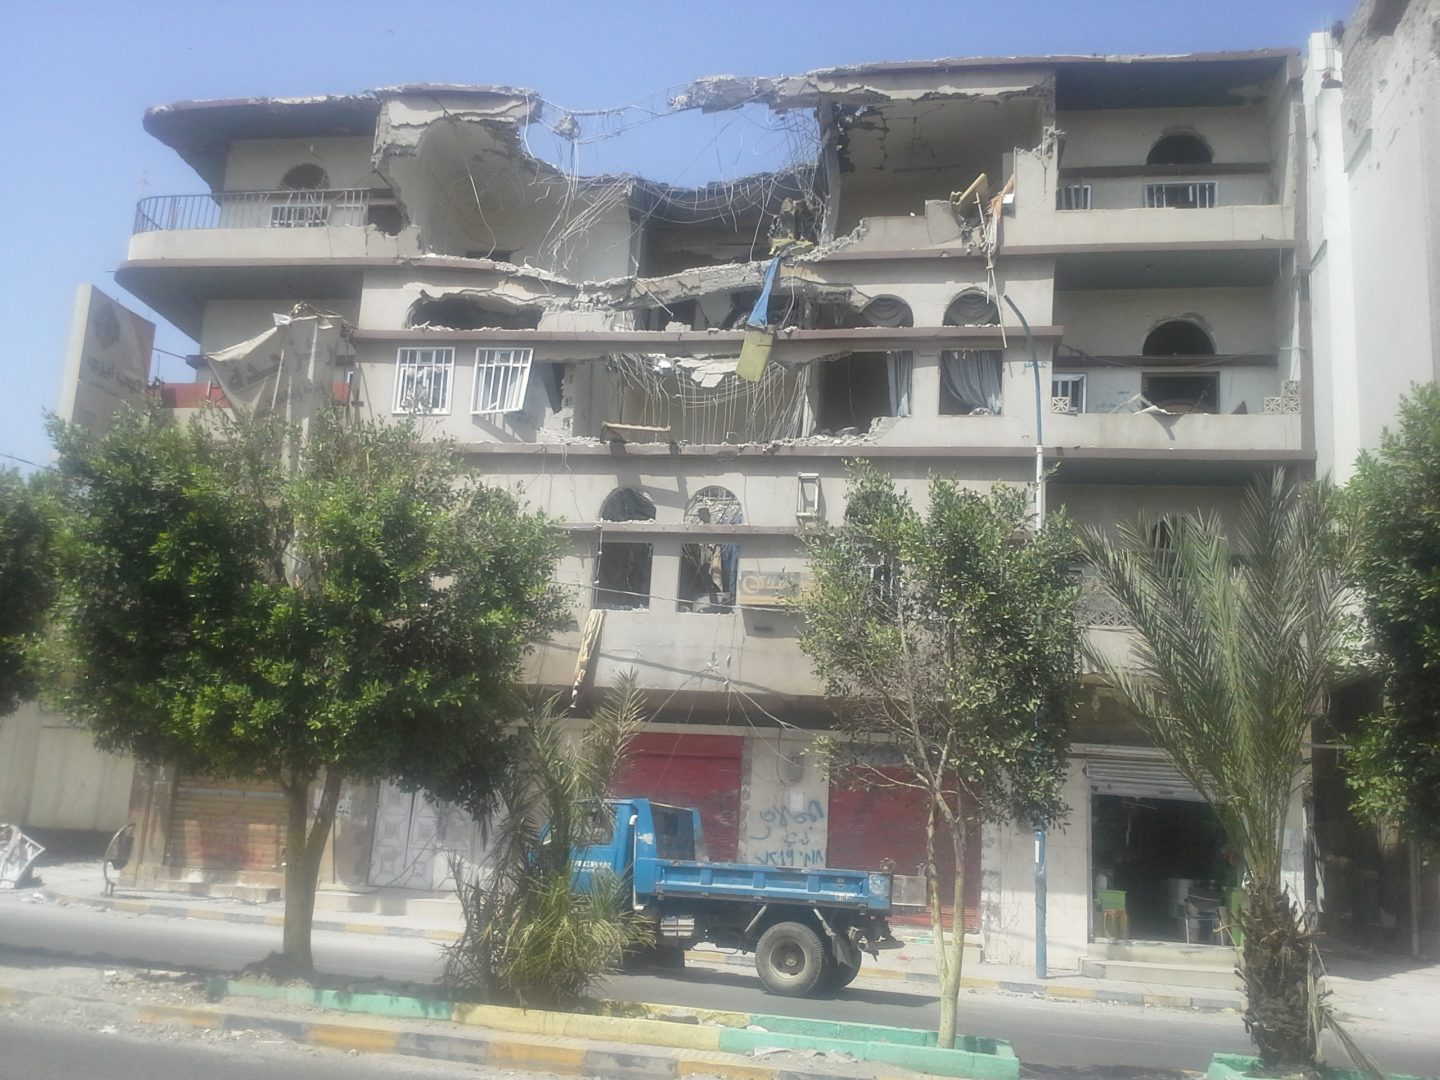 Yemeni Apartment building destroyed by air raid